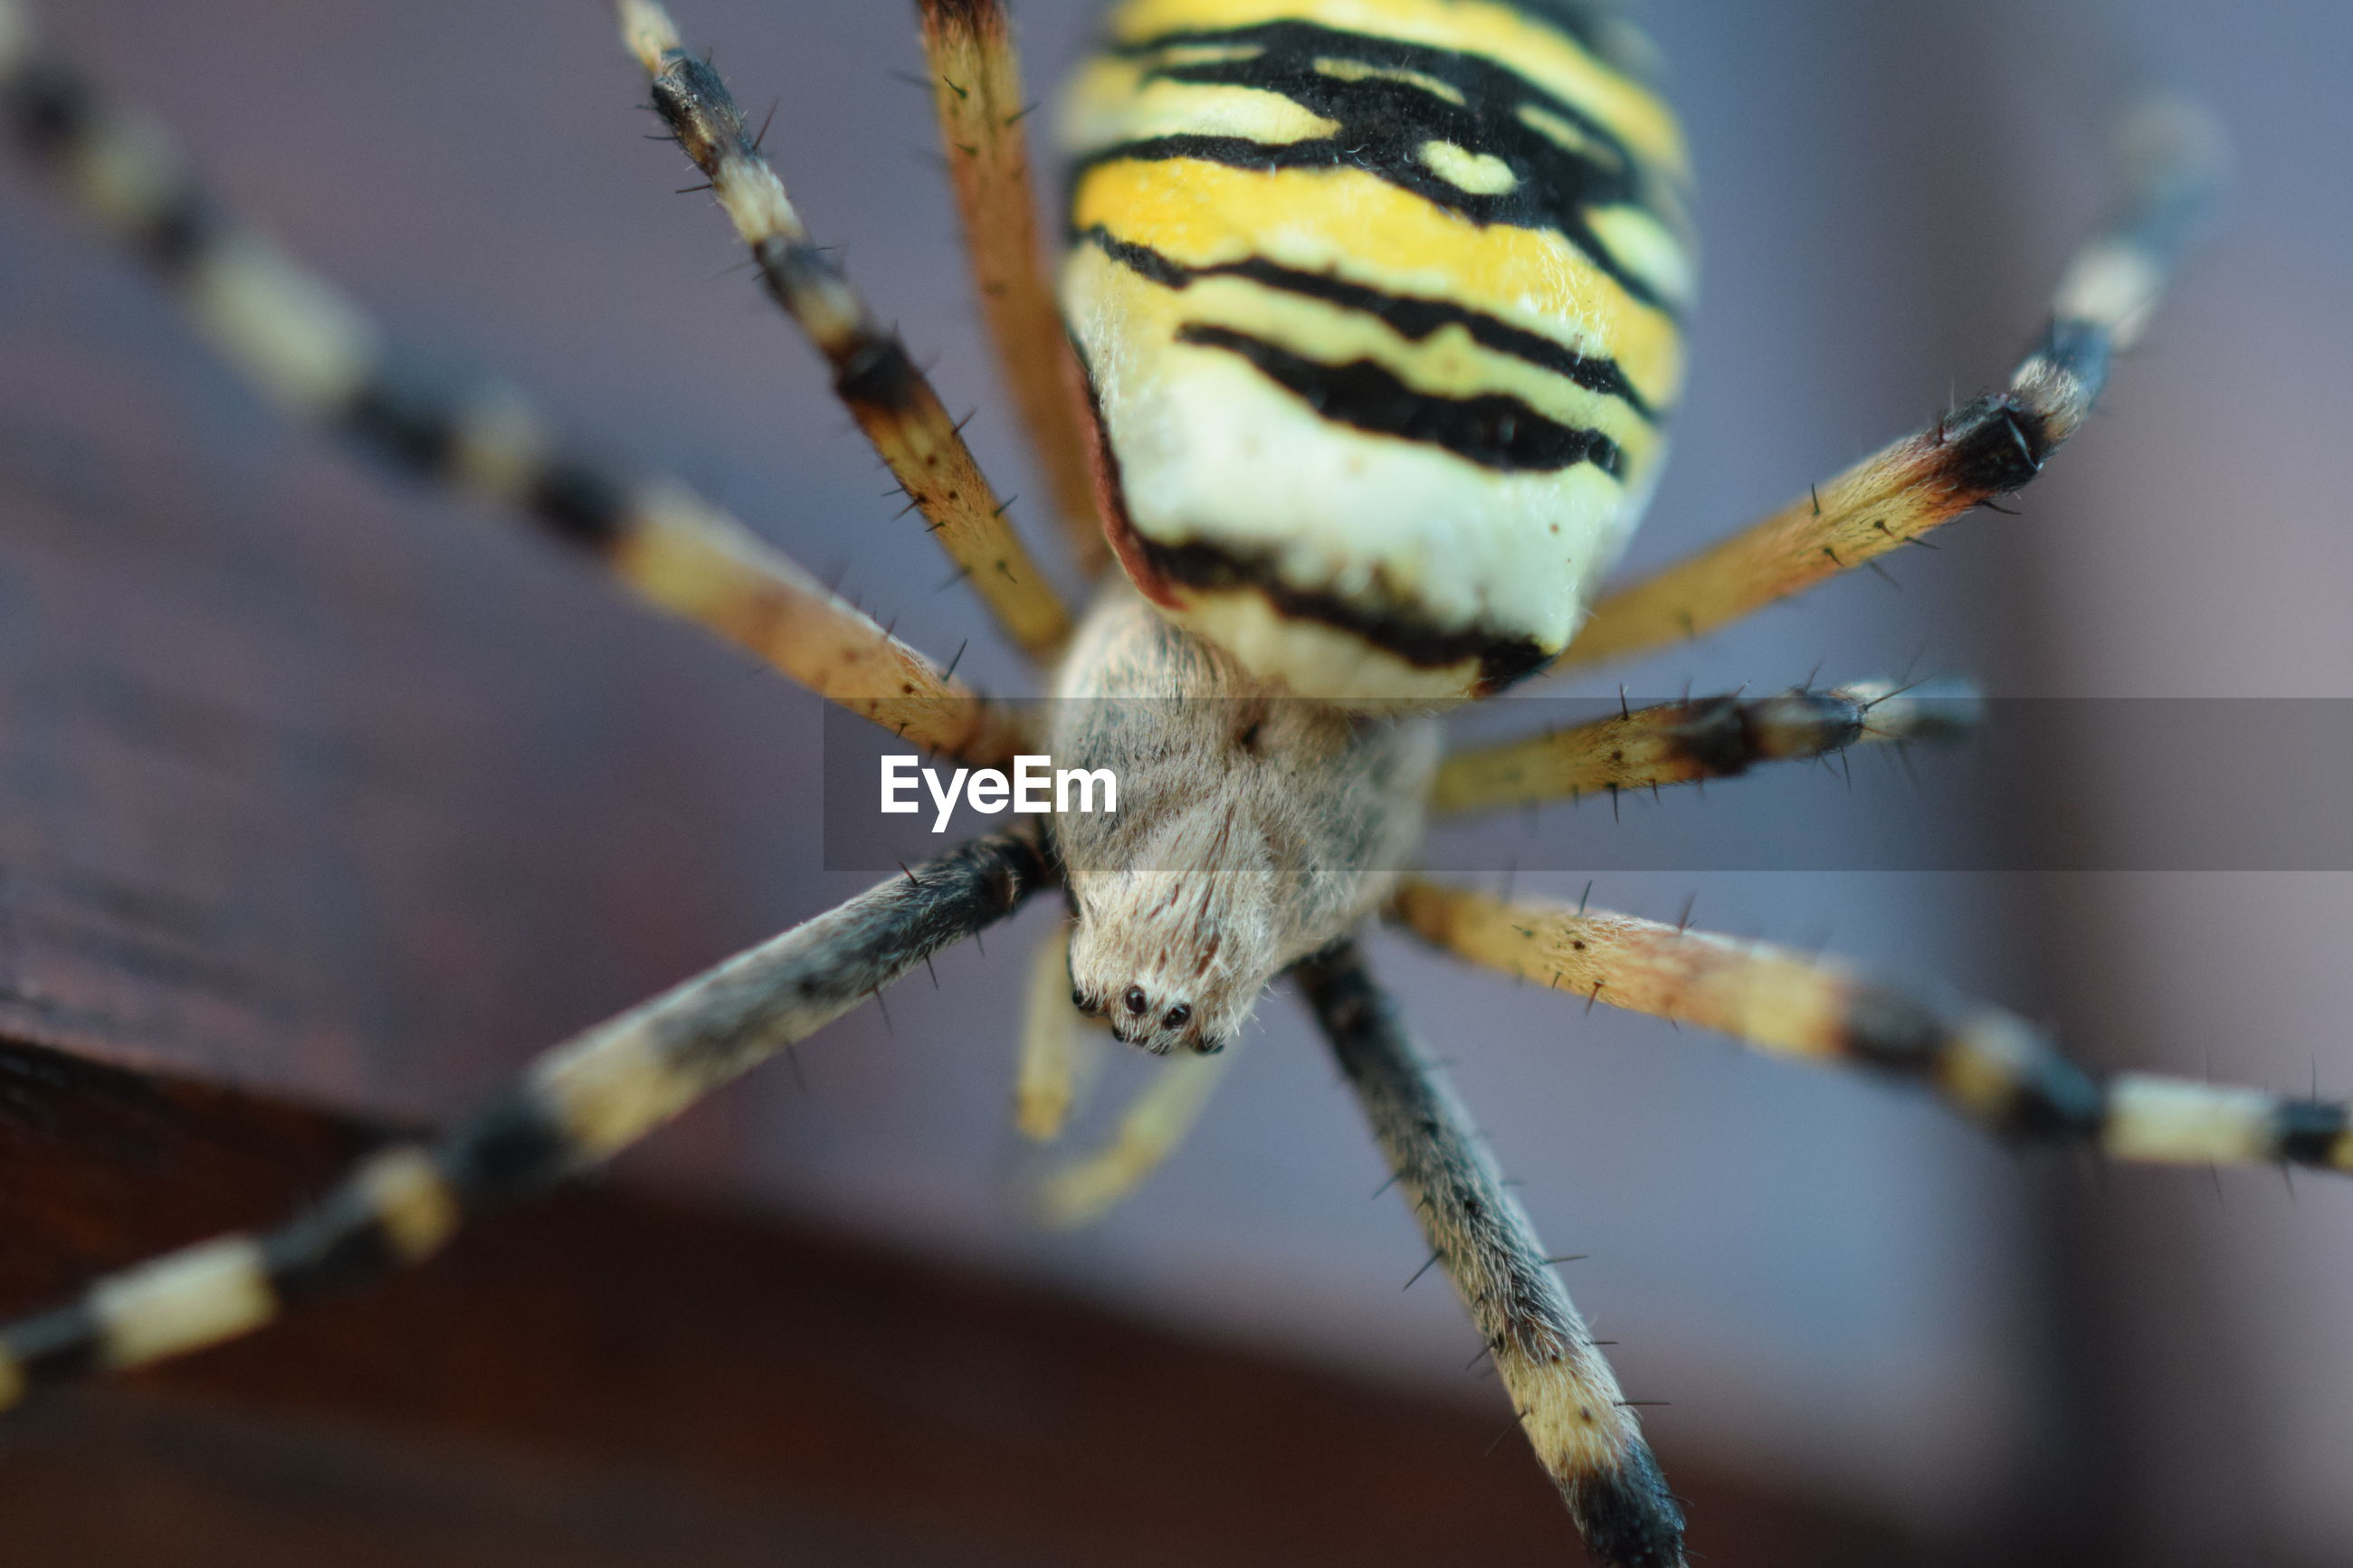 CLOSE-UP OF SPIDER OUTDOORS